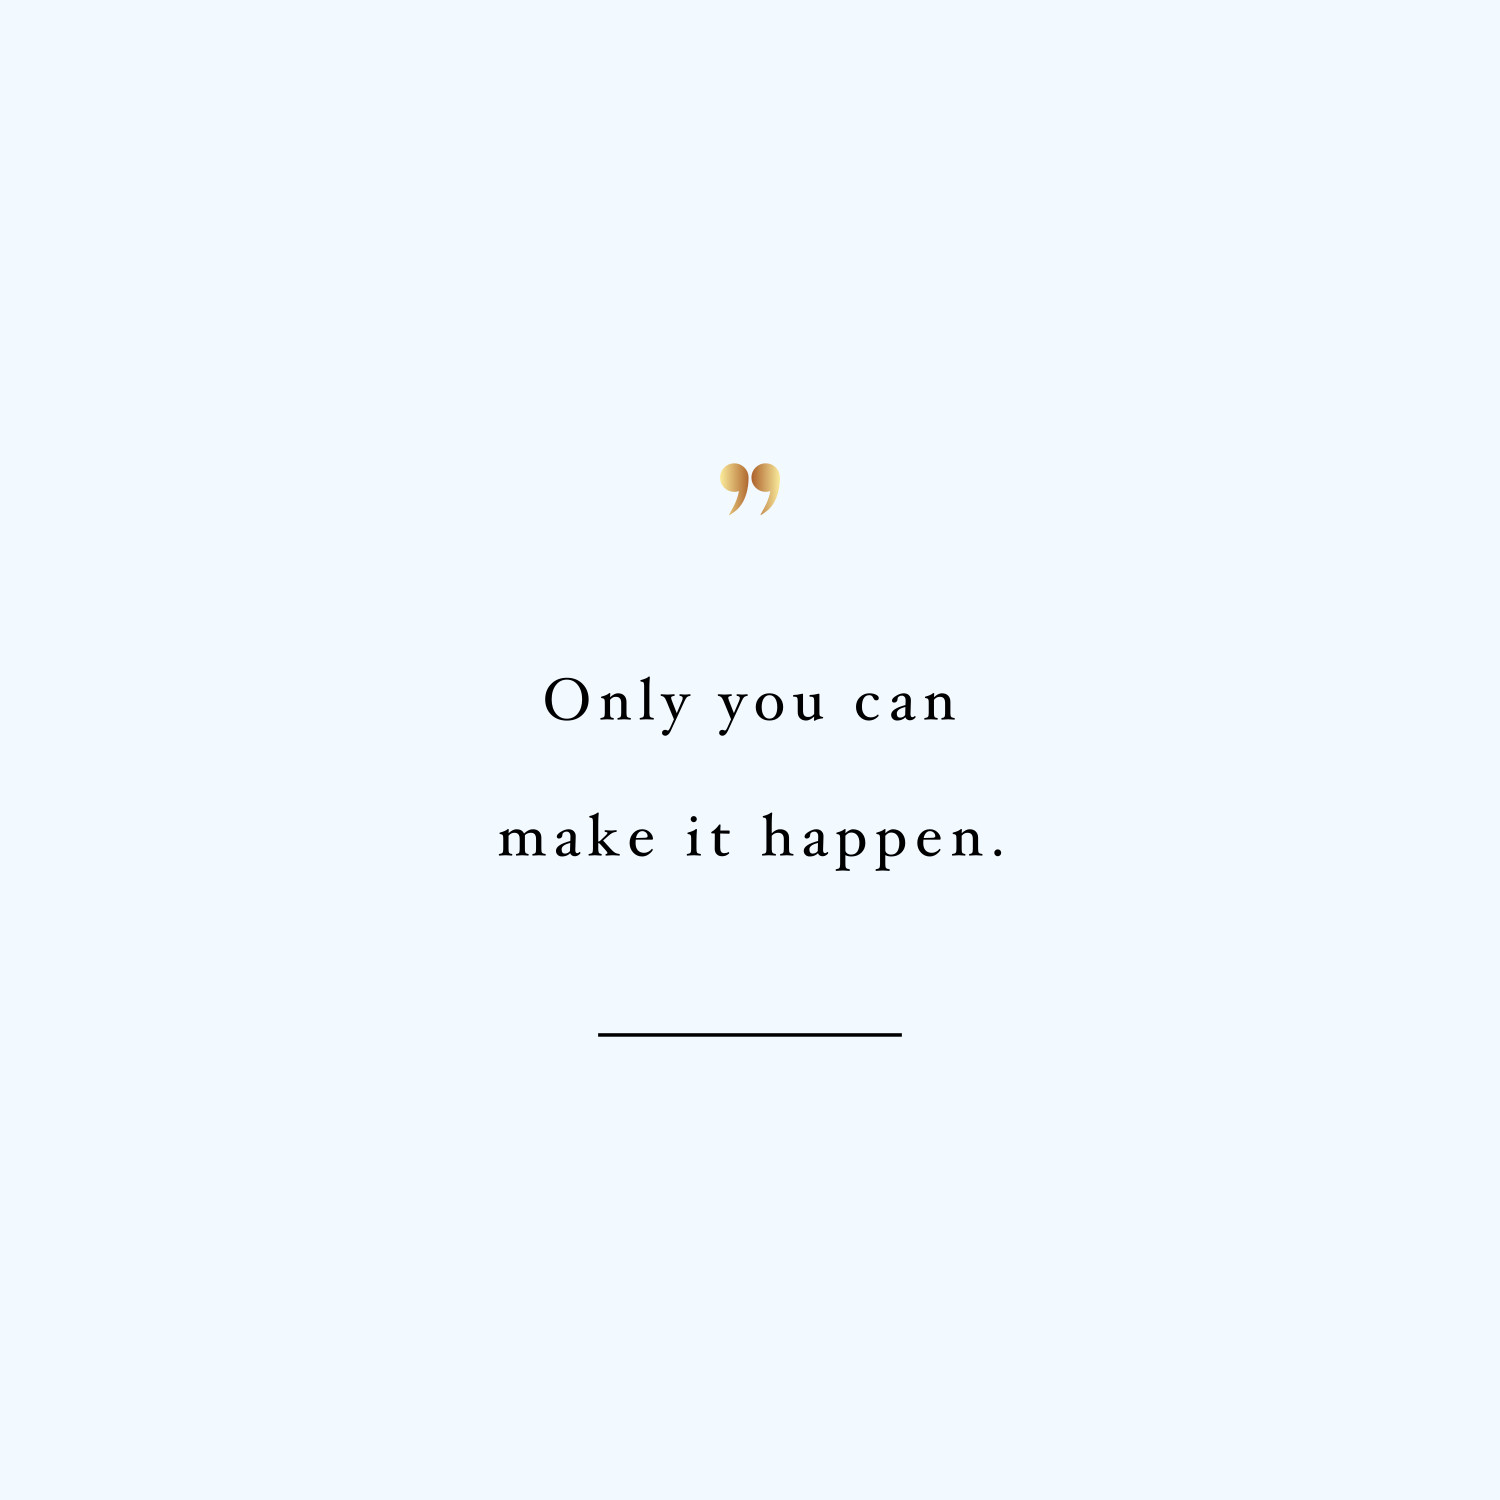 Only you! Browse our collection of motivational health and fitness quotes and get instant exercise and training inspiration. Transform positive thoughts into positive actions and get fit, healthy and happy! https://www.spotebi.com/workout-motivation/only-you-exercise-and-training-inspiration/